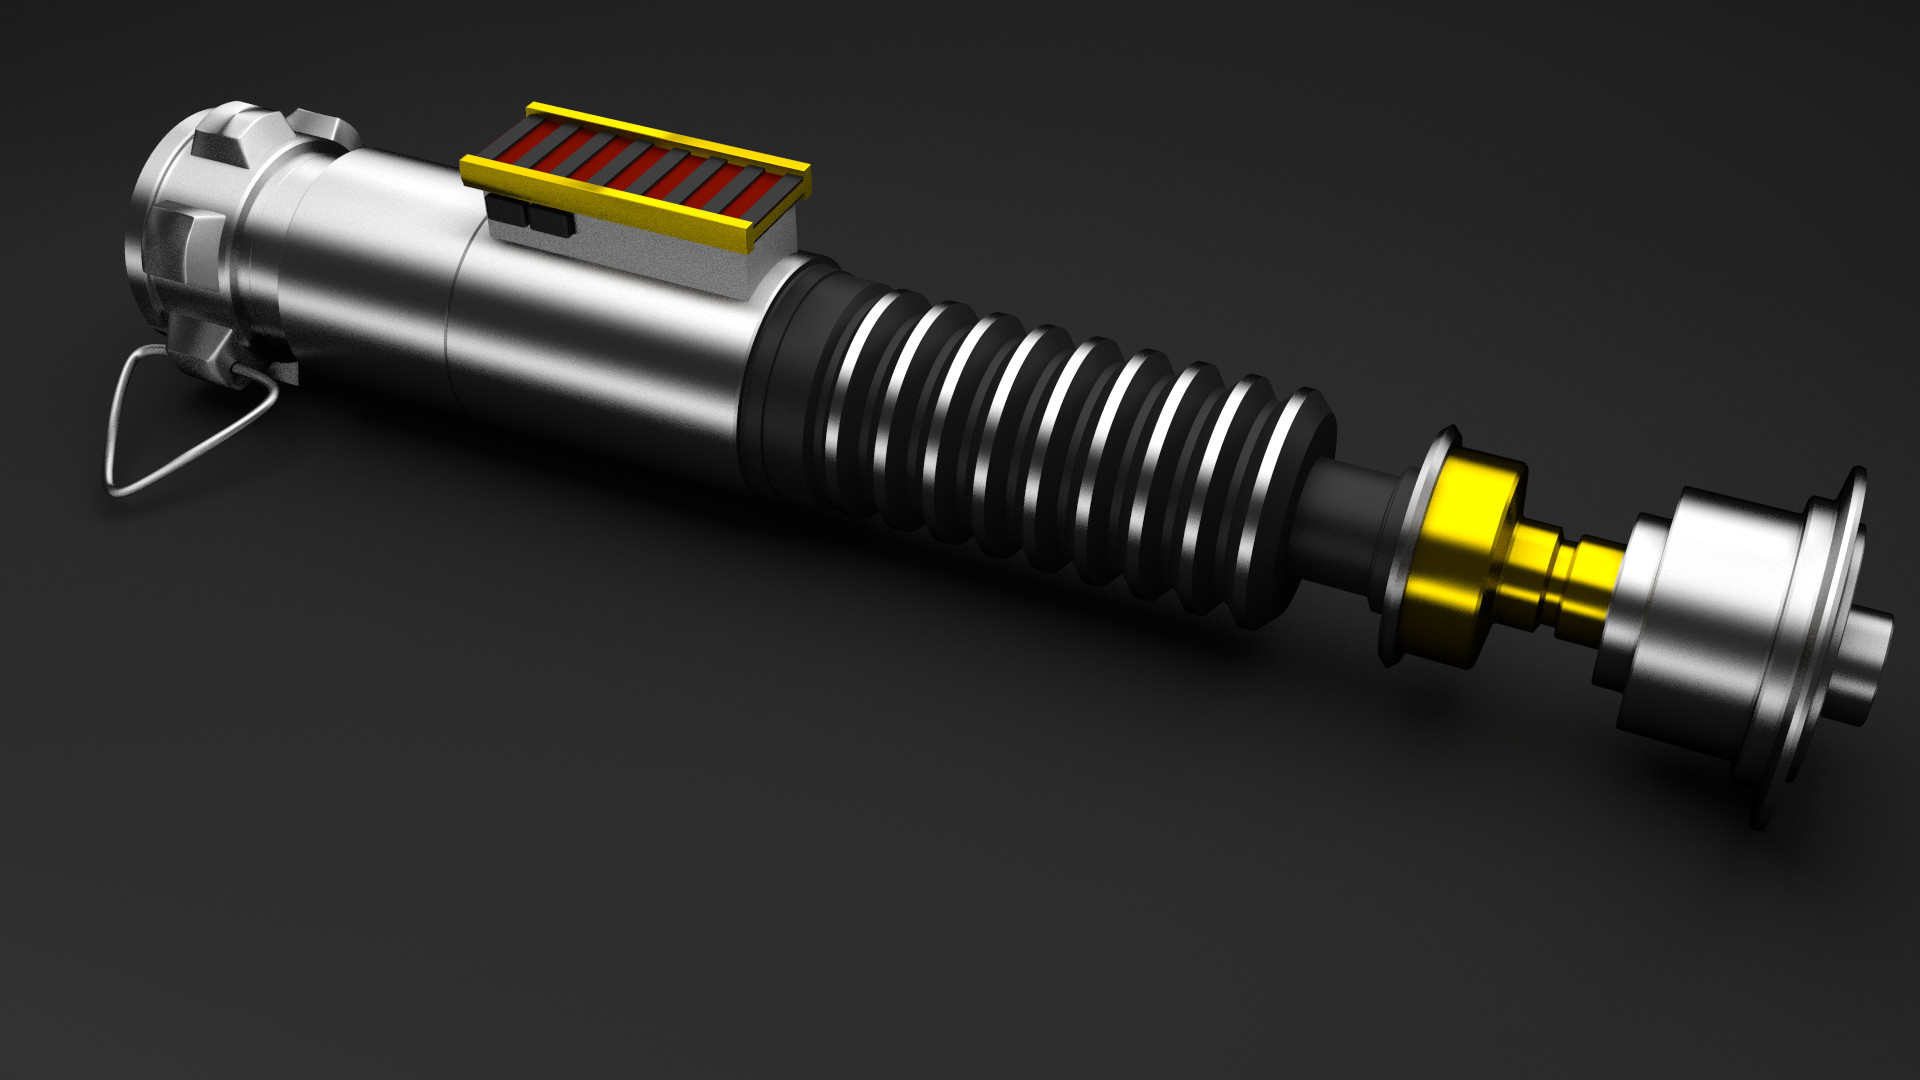 1920x1080 Luke's Lightsaber by RegusMartin Luke's Lightsaber by RegusMartin